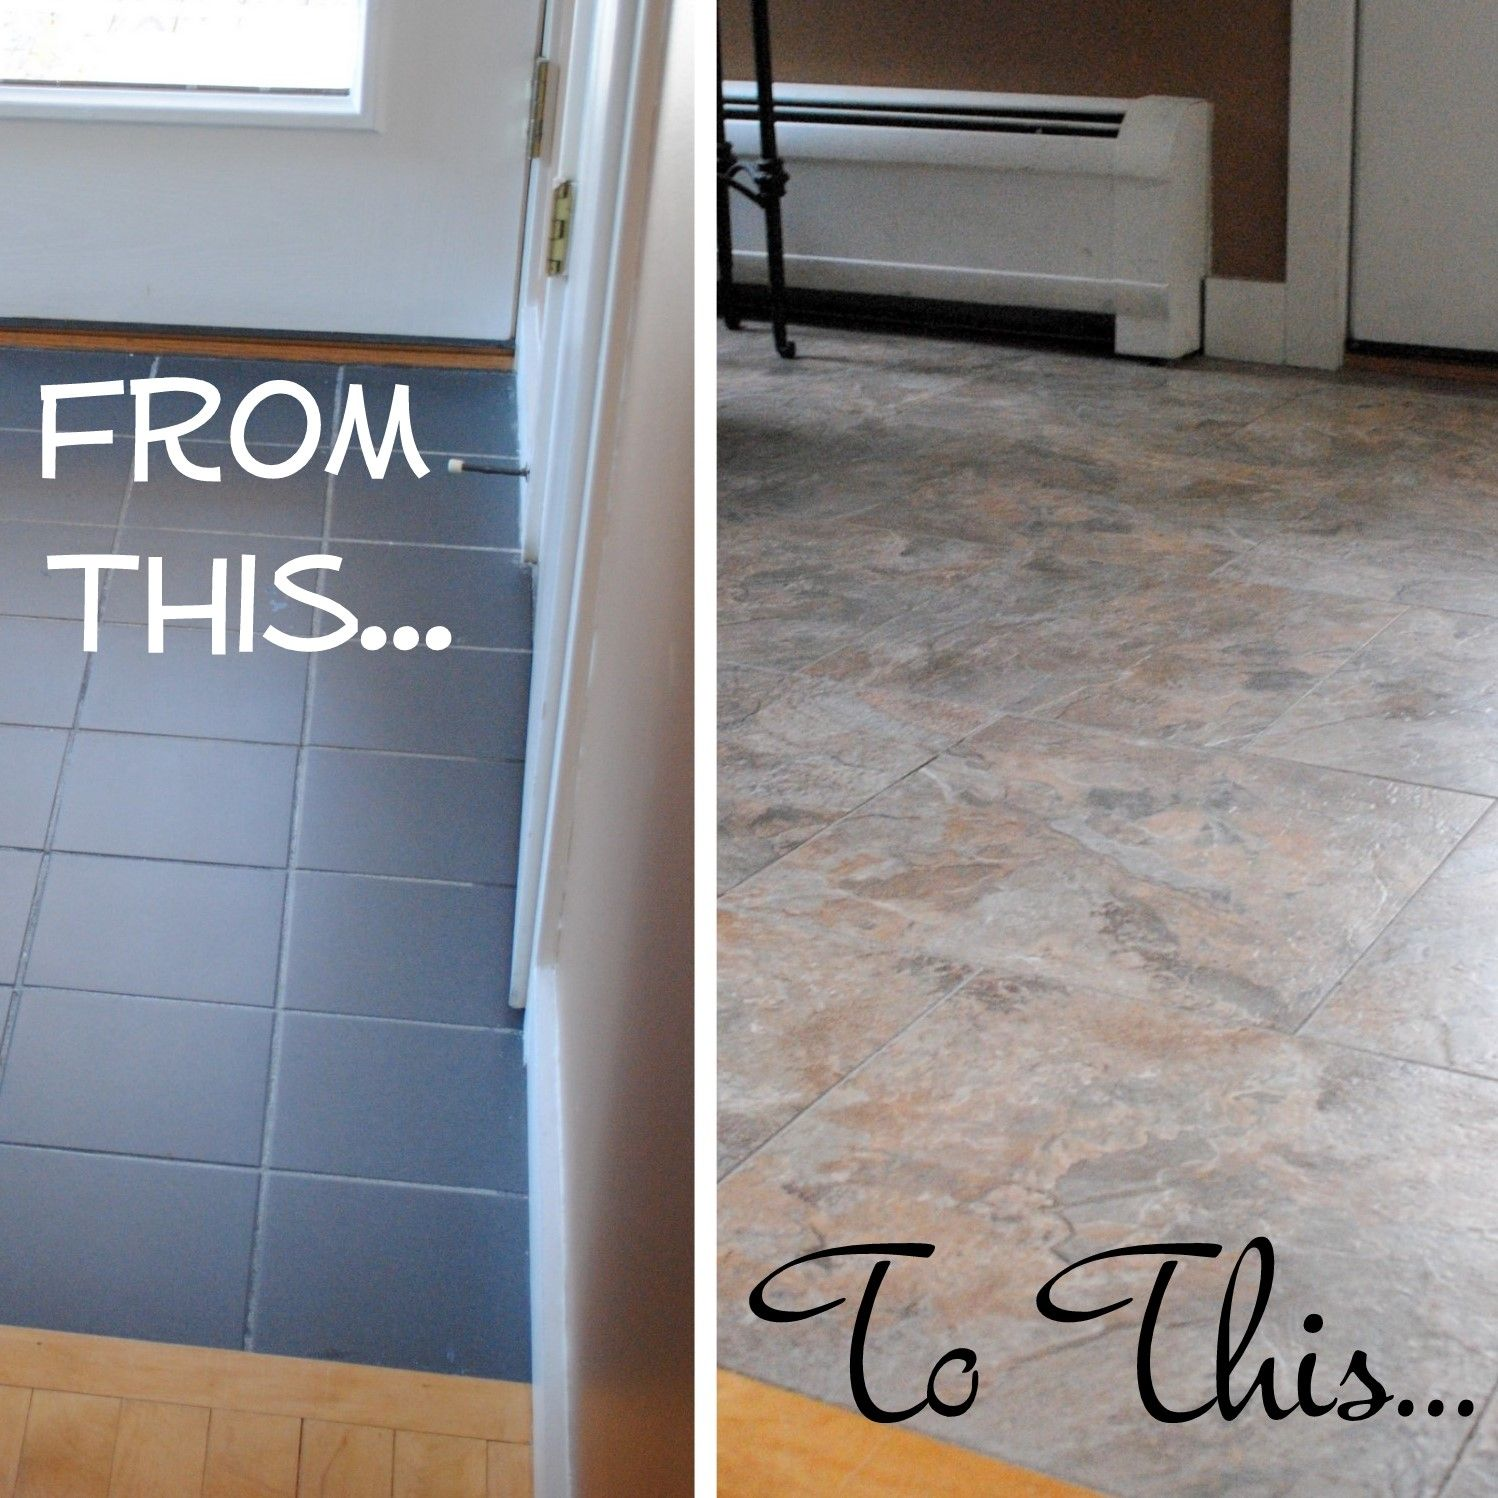 did you know that you can grout peel-and-stick vinyl tiles to look